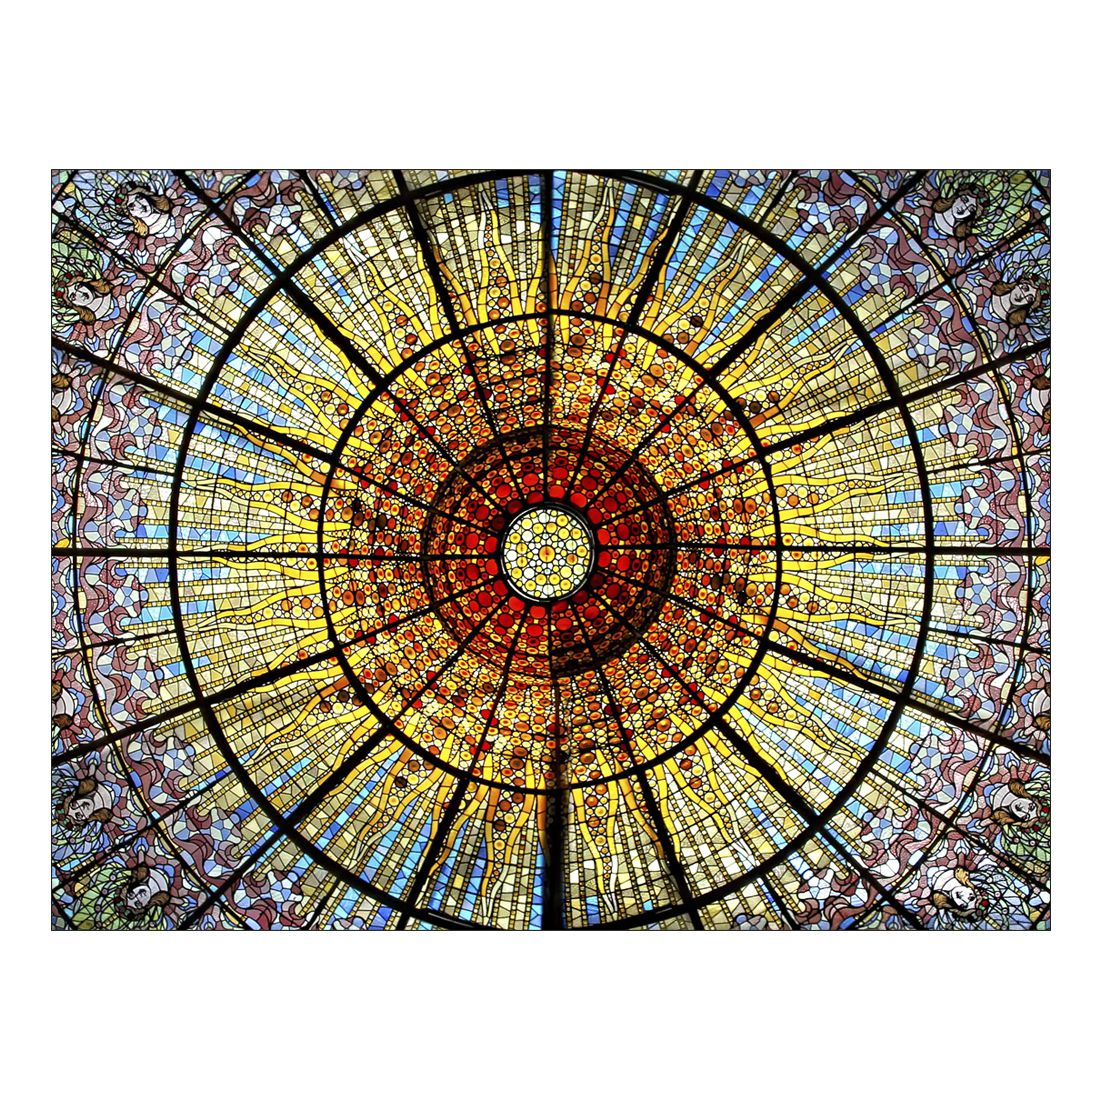 Leinwandbild COLOURFUL CHURCH ROOF – Abmessung 100 x 75 cm, Gallery of Innovative Art günstig